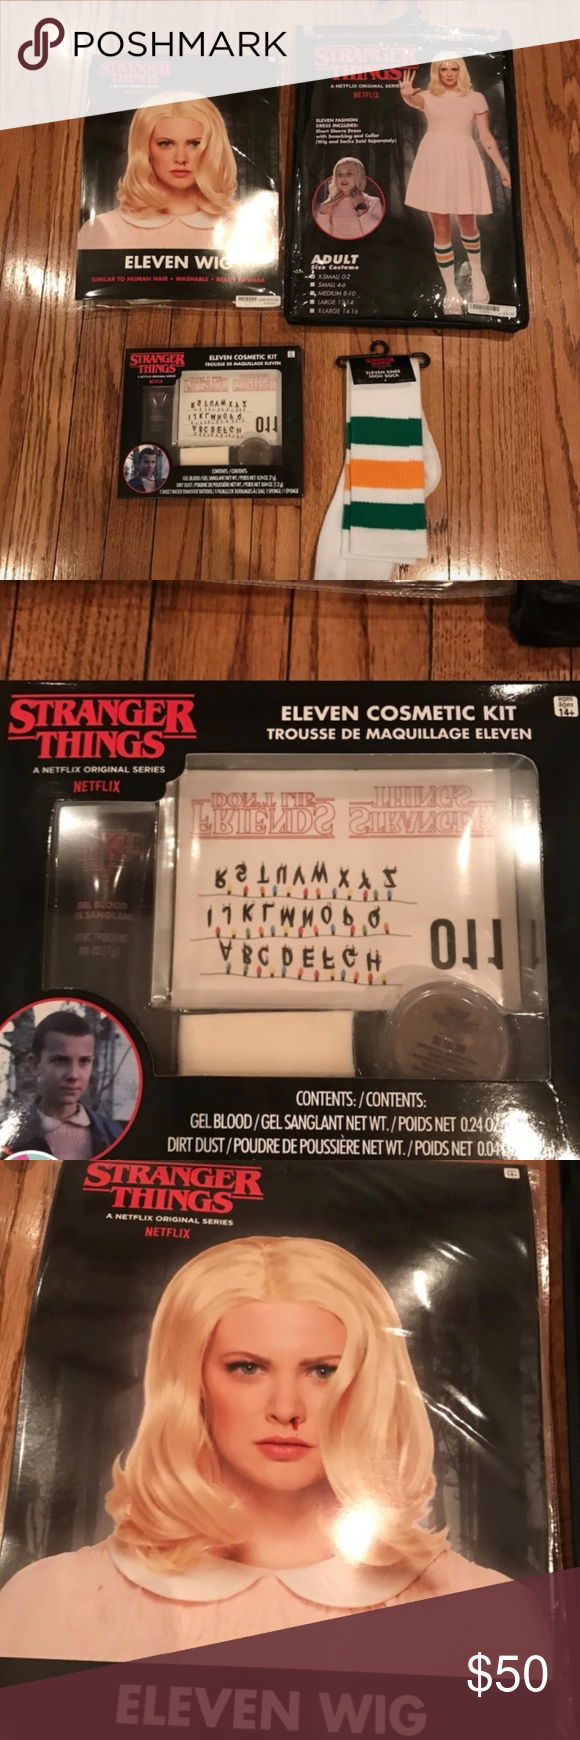 Pink dress from stranger things  NEW Stranger Things  Eleven halloween costume NWT  My Posh Closet